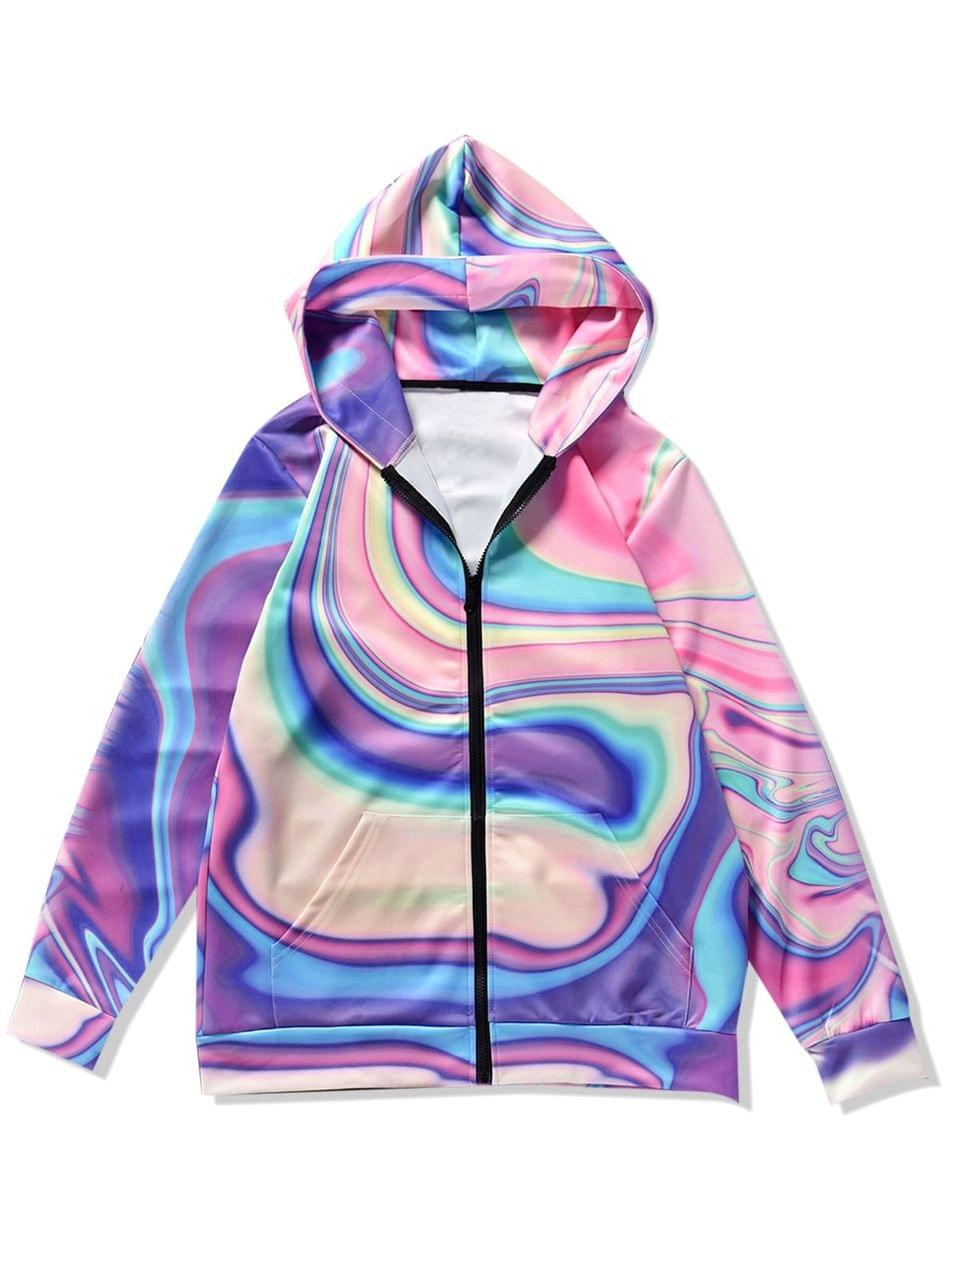 Men's Asymmetric Dazzle Print Zip Up Hoodie - Multi M